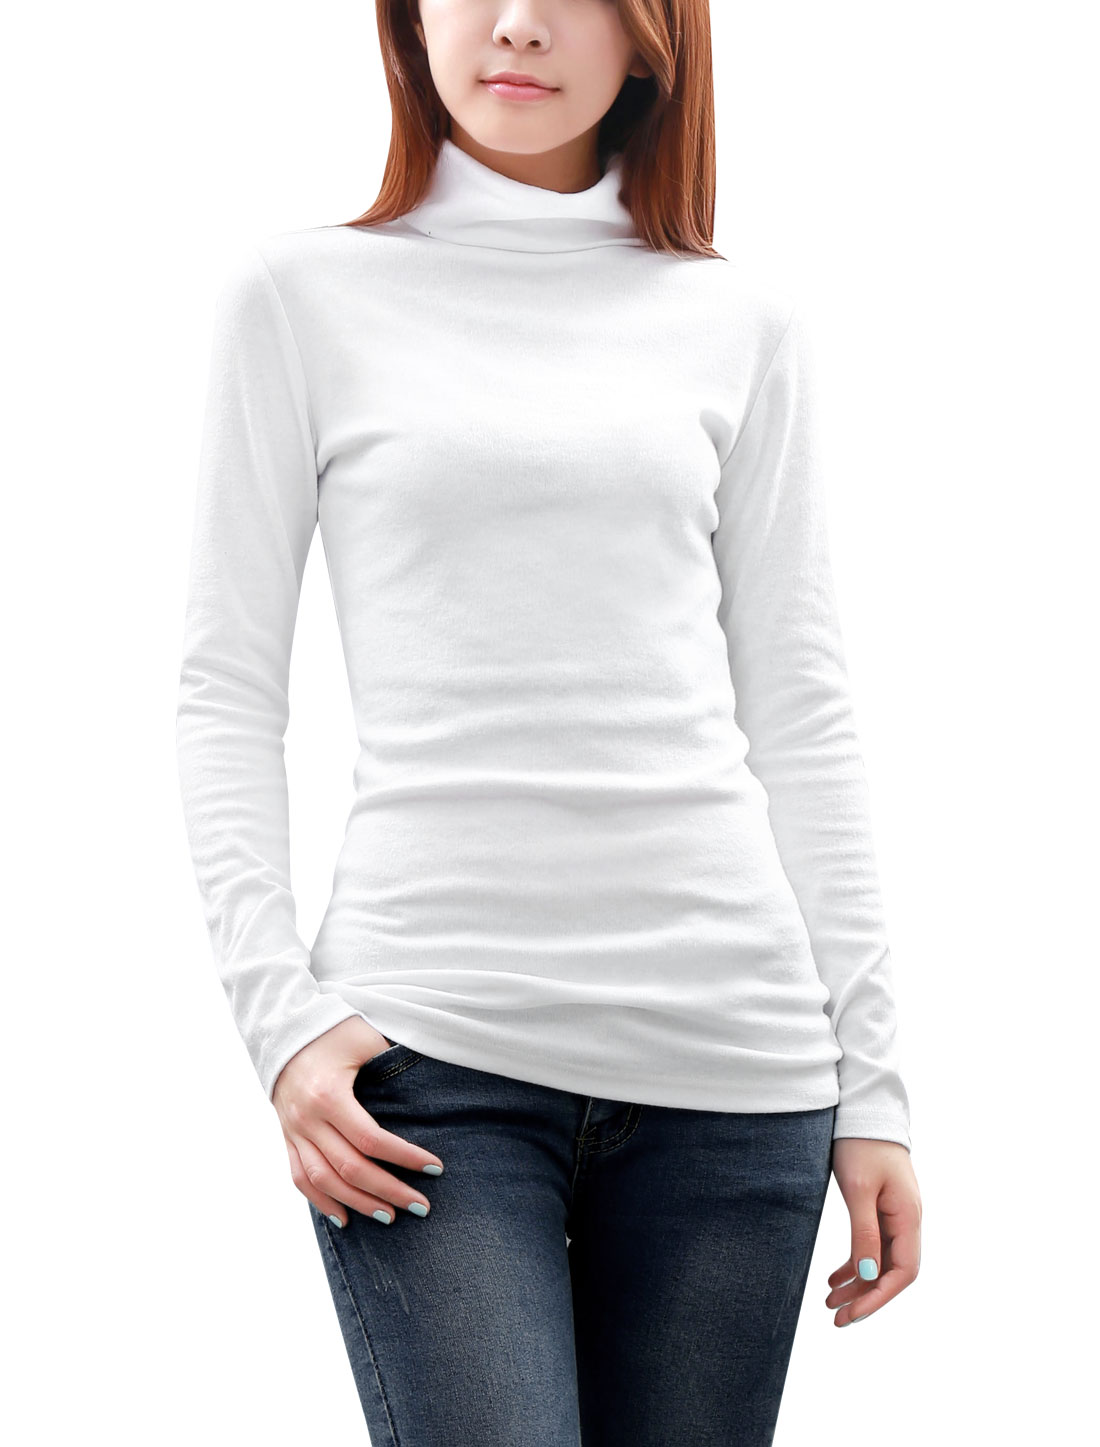 Women Slim Fit Slipover Long Sleeve Soft Rib Knit Top White XL